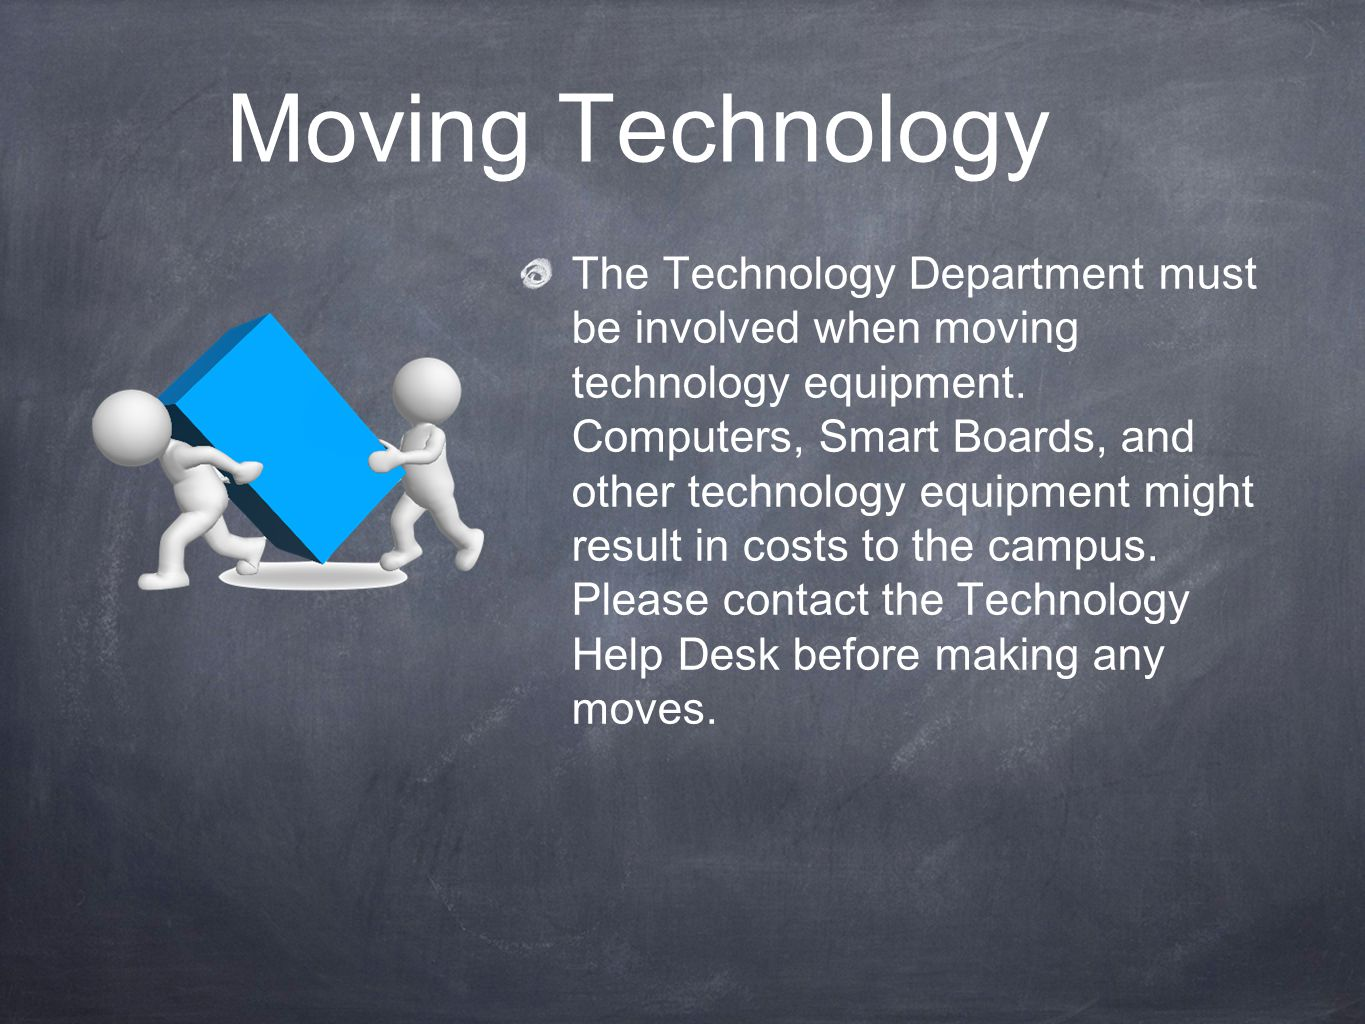 Moving Technology The Technology Department must be involved when moving technology equipment.